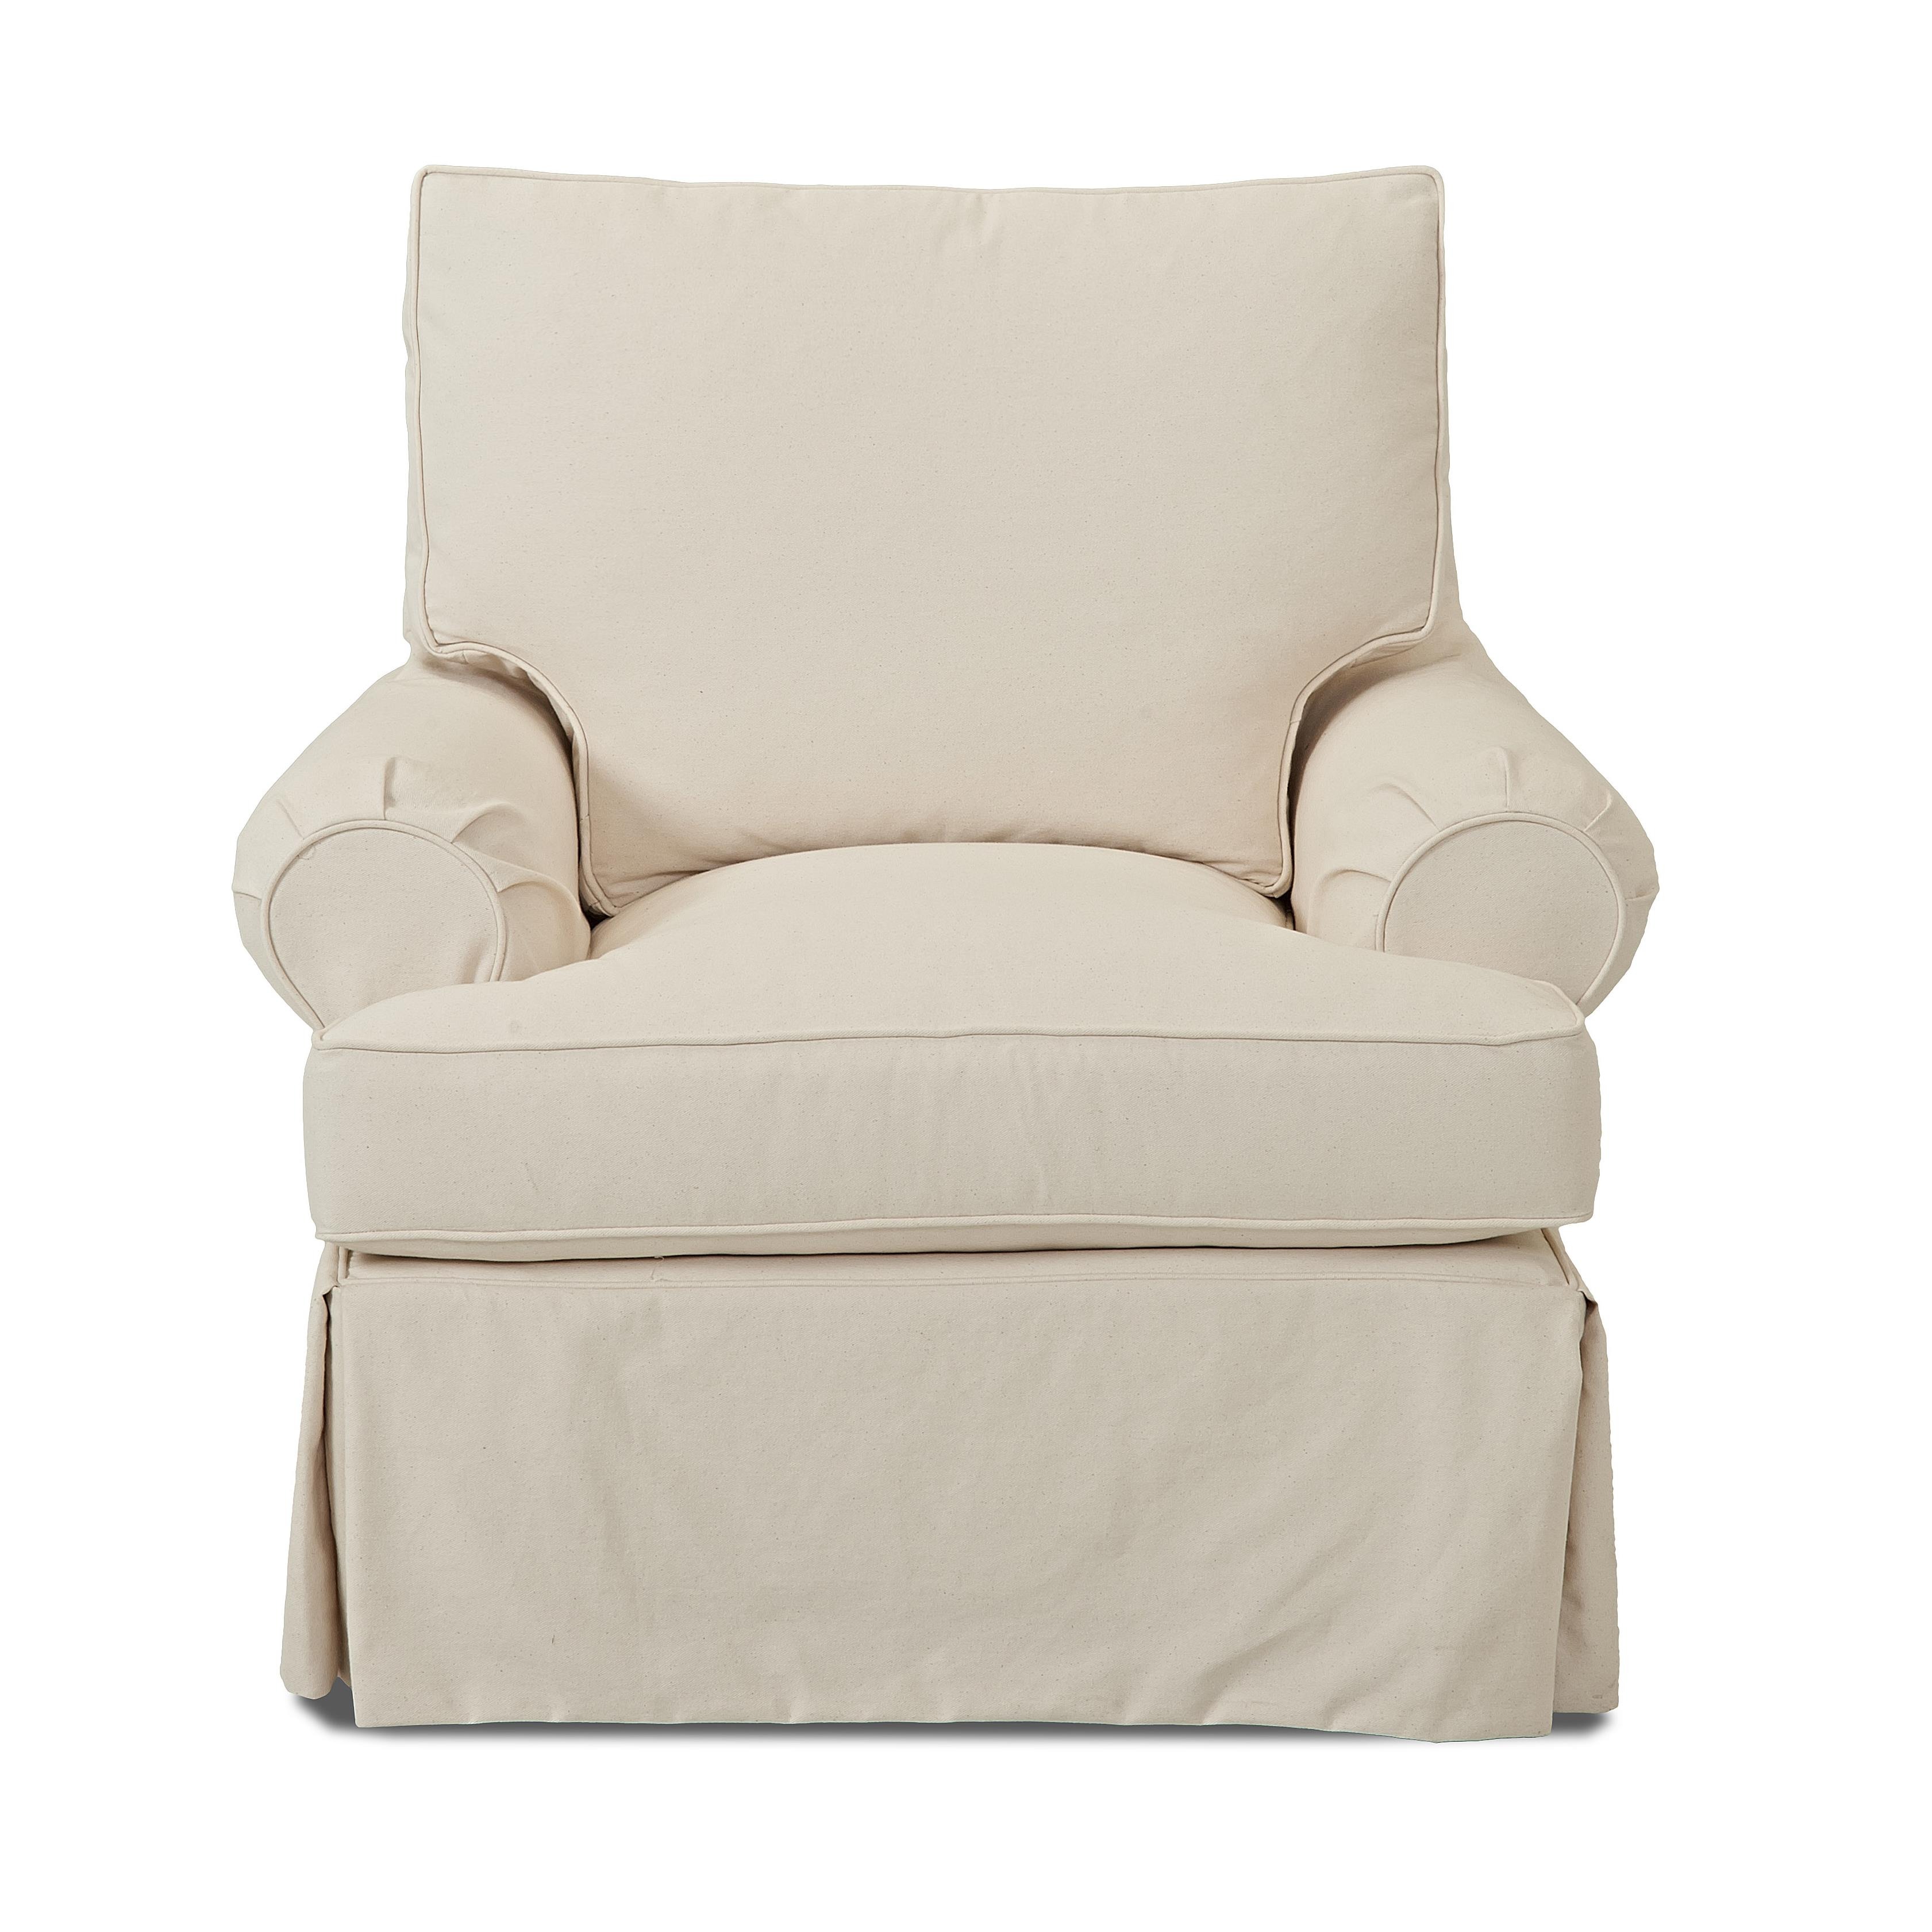 Carolina Chair with Slipcover by Klaussner at Johnny Janosik